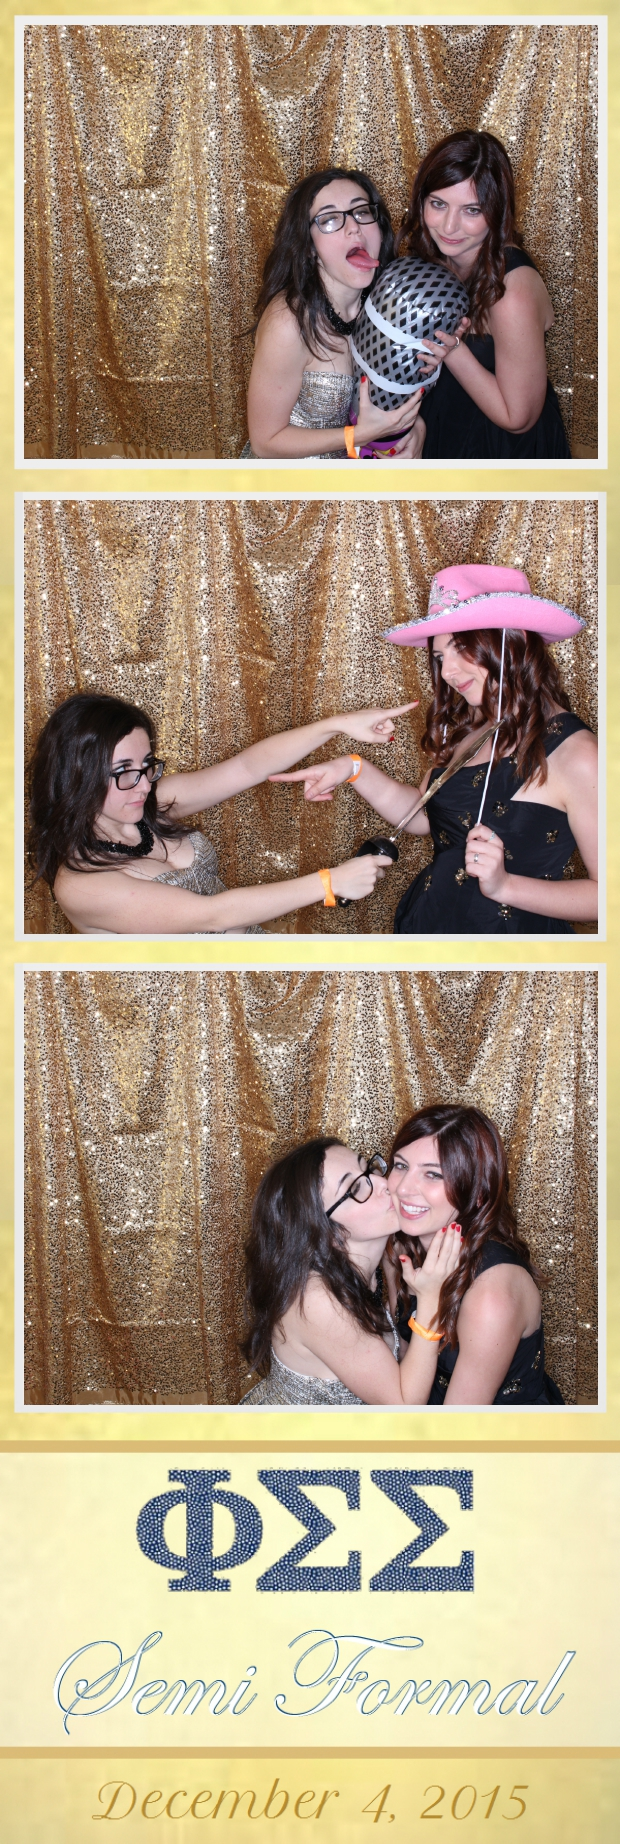 Guest House Events Photo Booth Phi Sigma Sigma Semi Formal (29).jpg